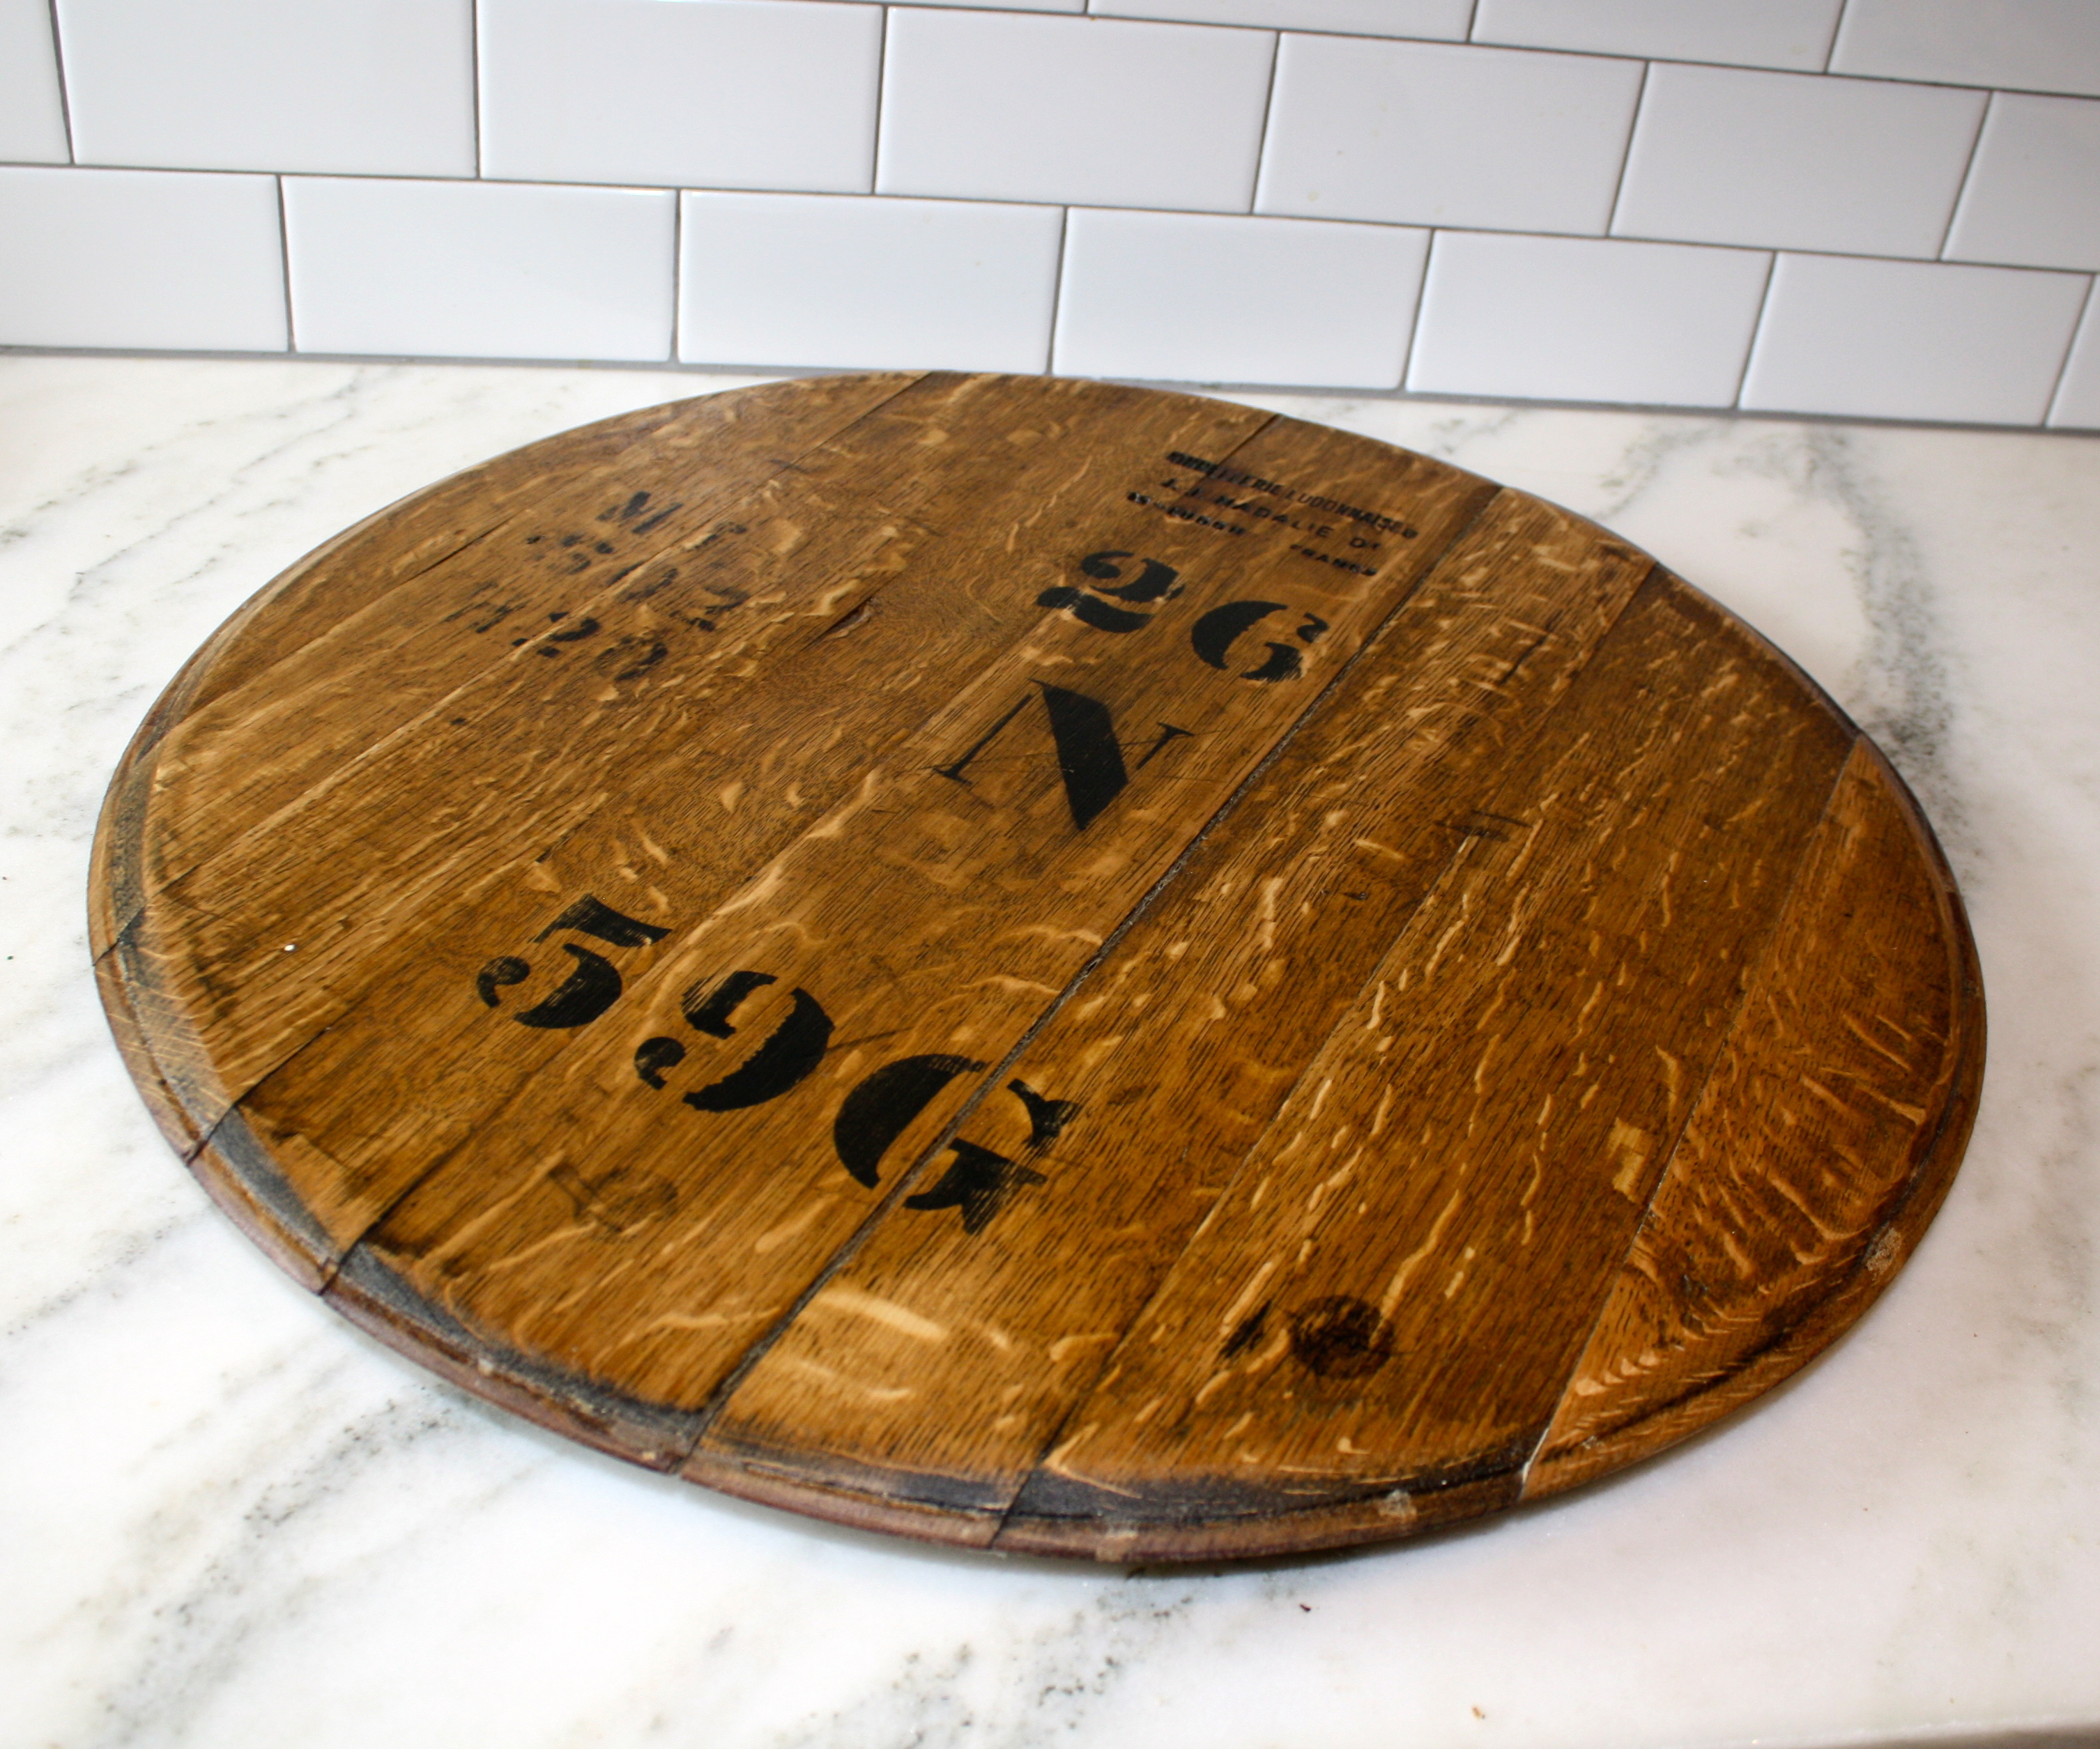 Chic wine barrel lazy susan for furniture accessories ideas with personalized wine barrel lazy susan